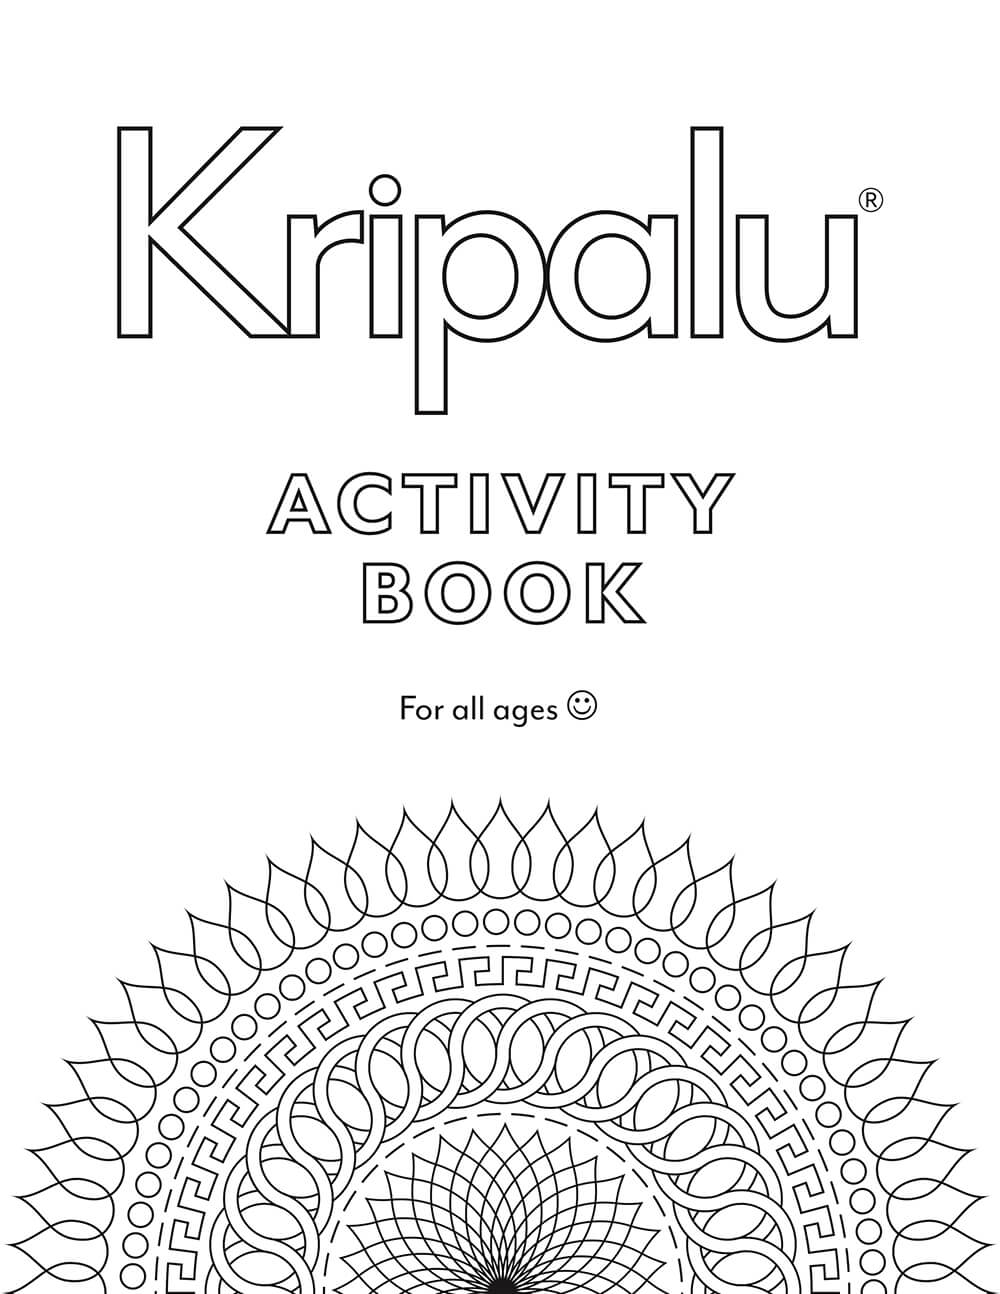 Kripalu Activity Book